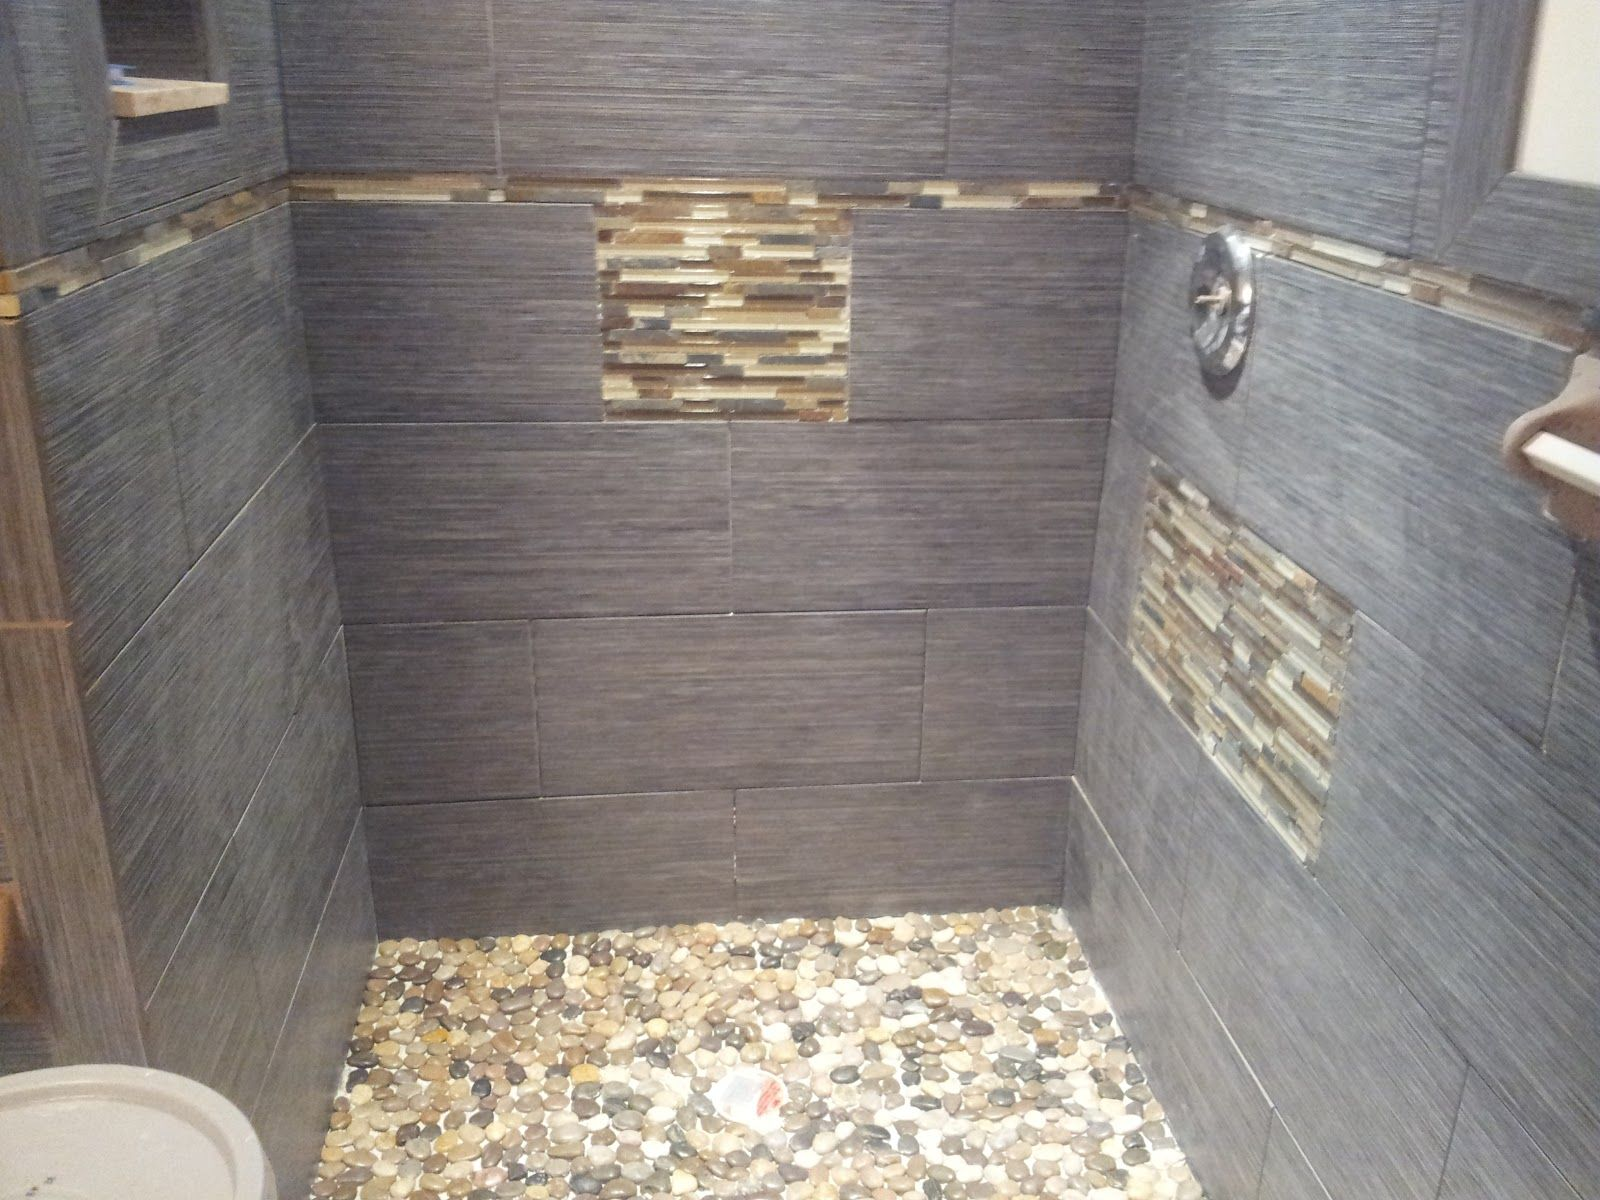 rock looking floor tile glass tile river stone and porcelain tile shower installed in